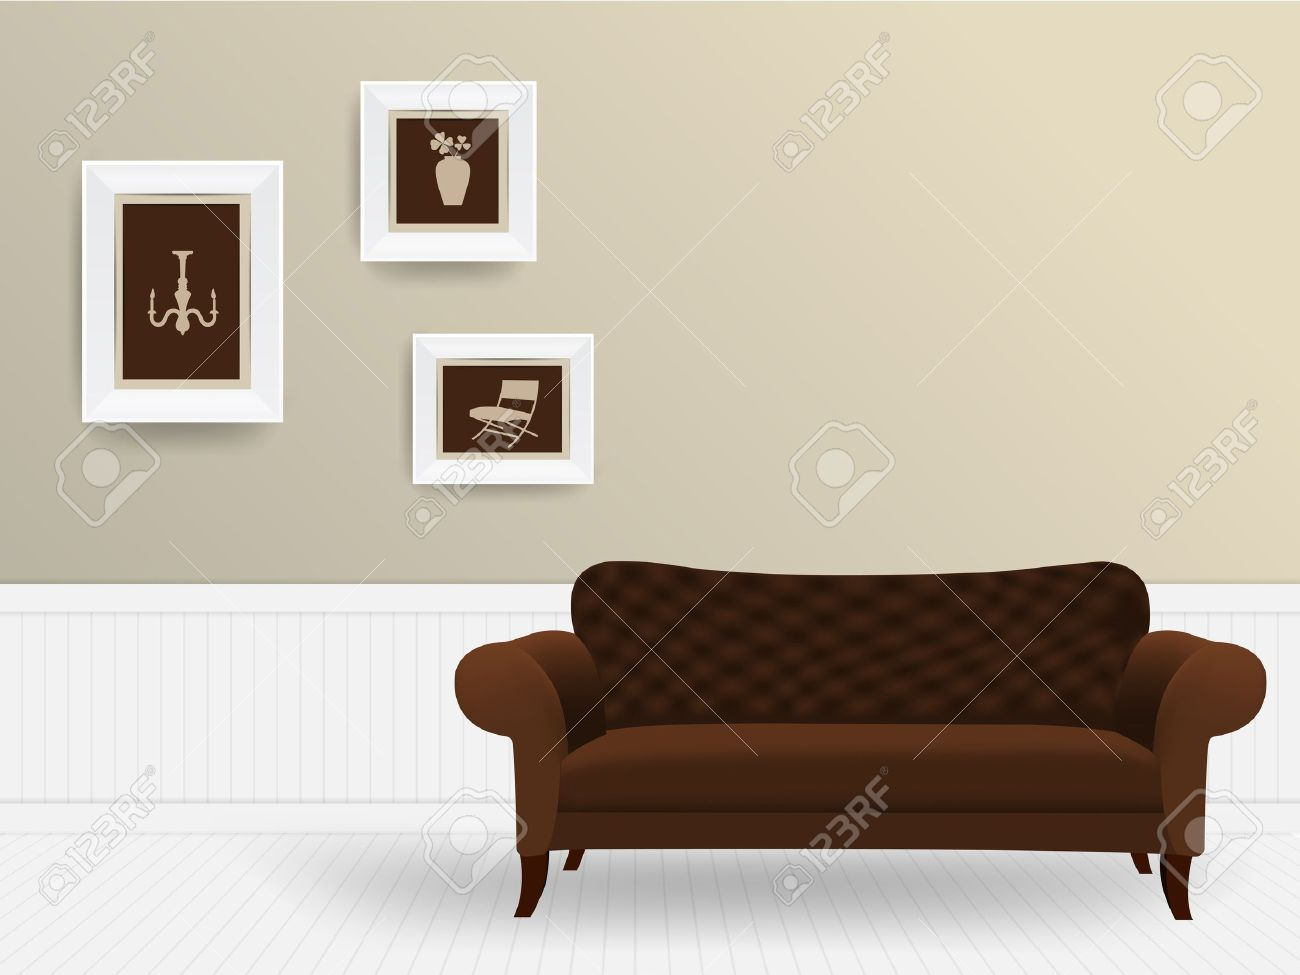 Living Room Furniture Templates